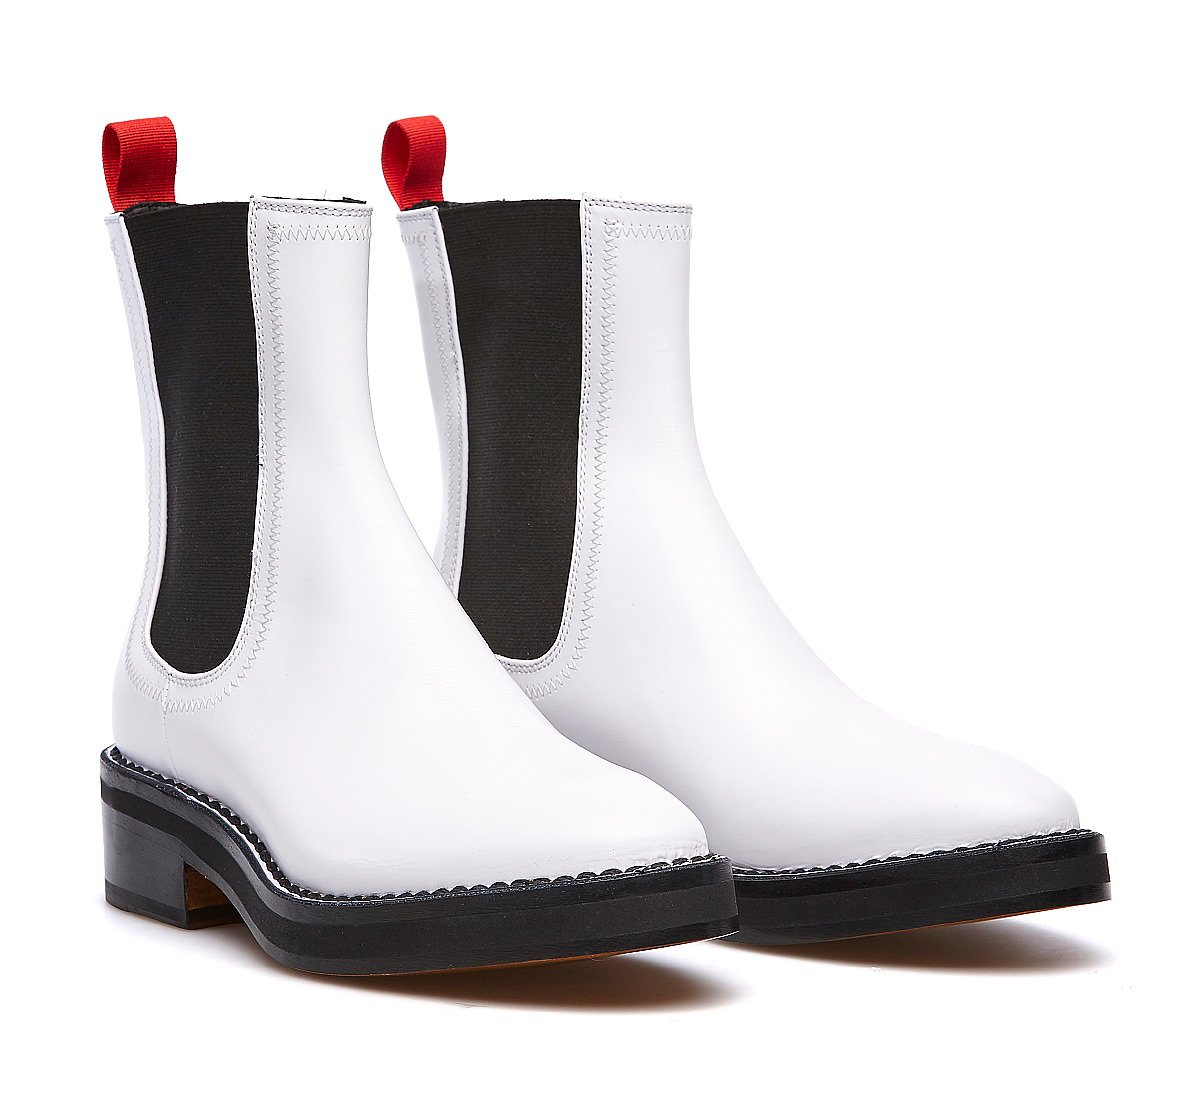 Barracuda Beatle Boots in calf leather